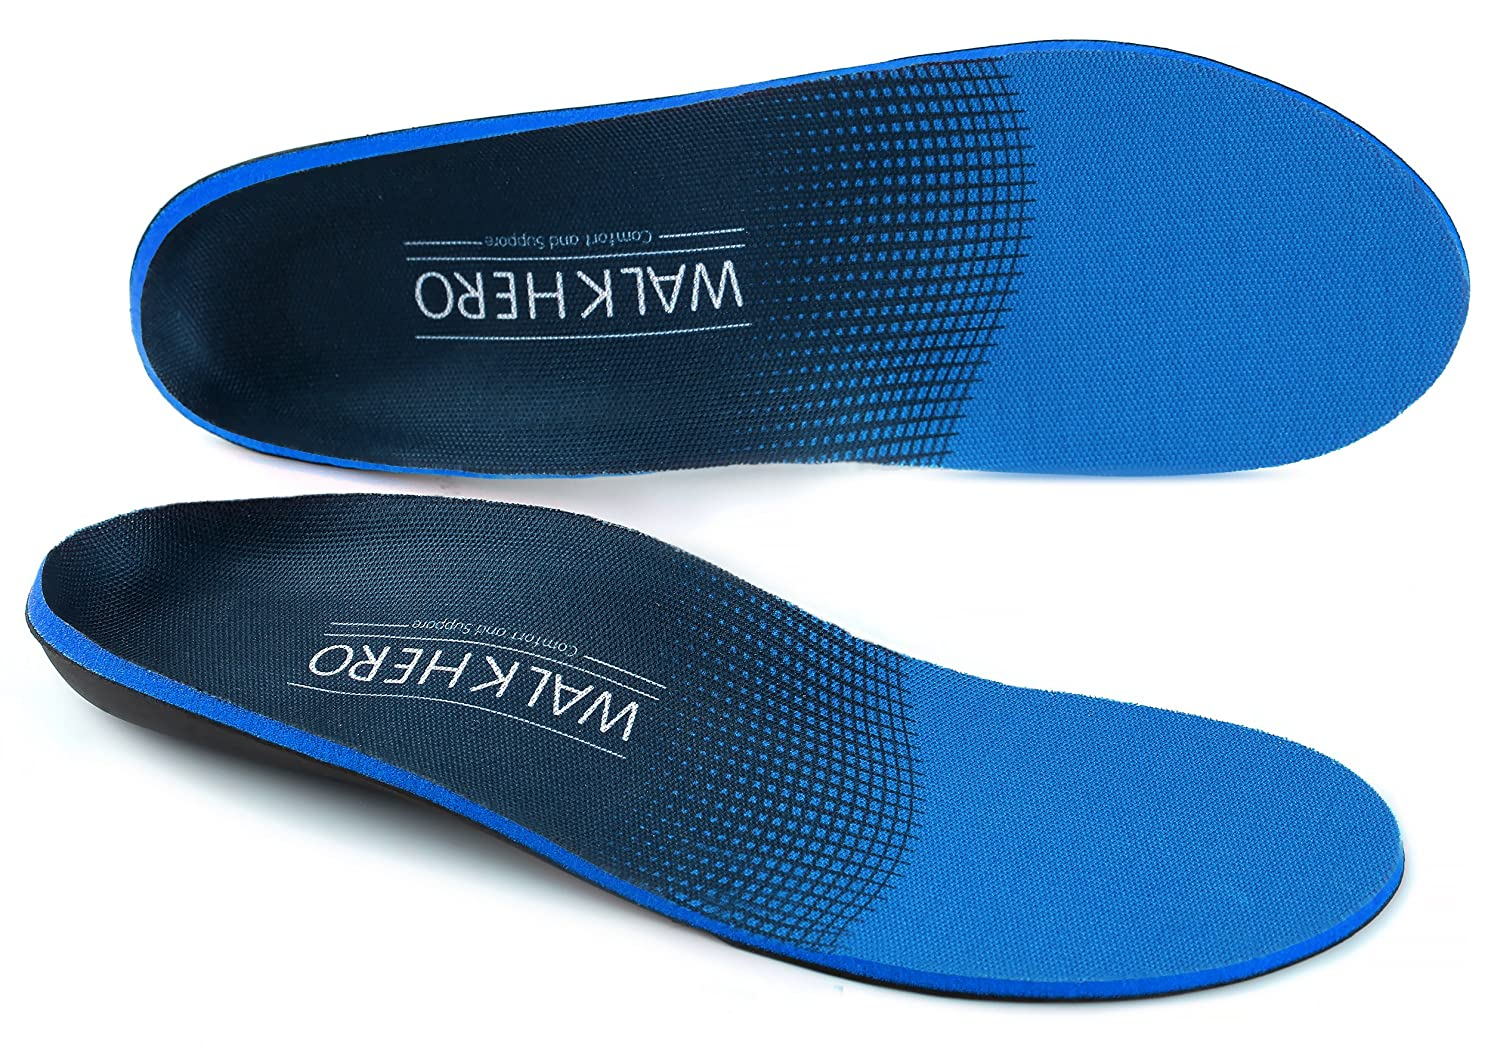 Plantar Fasciitis Feet Insoles Arch Supports Orthotics Inserts Relieve Flat Feet, High Arch, Foot Pain